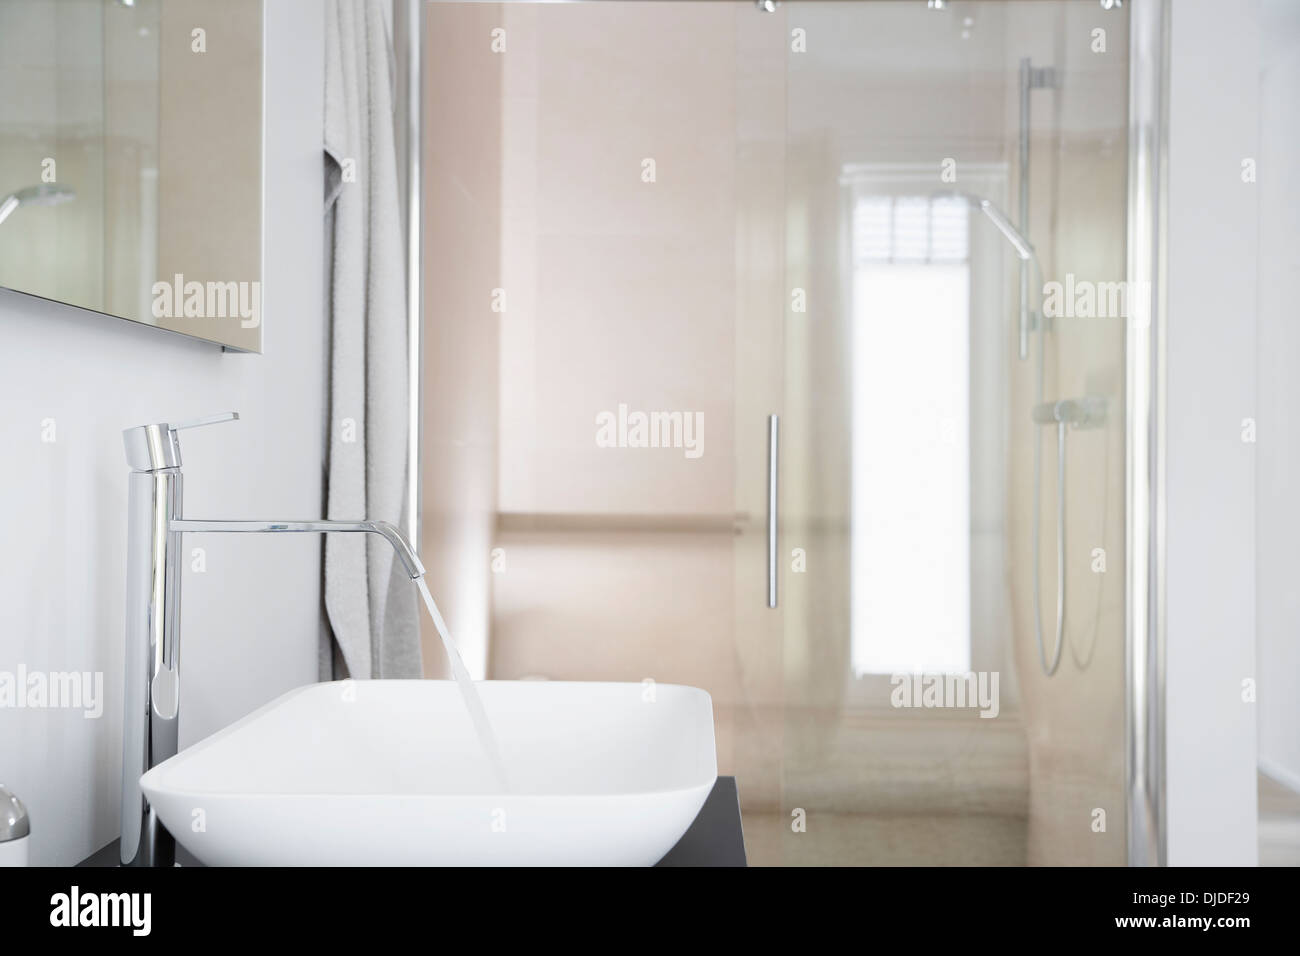 Germany, Cologne, Bathroom sink with running water - Stock Image